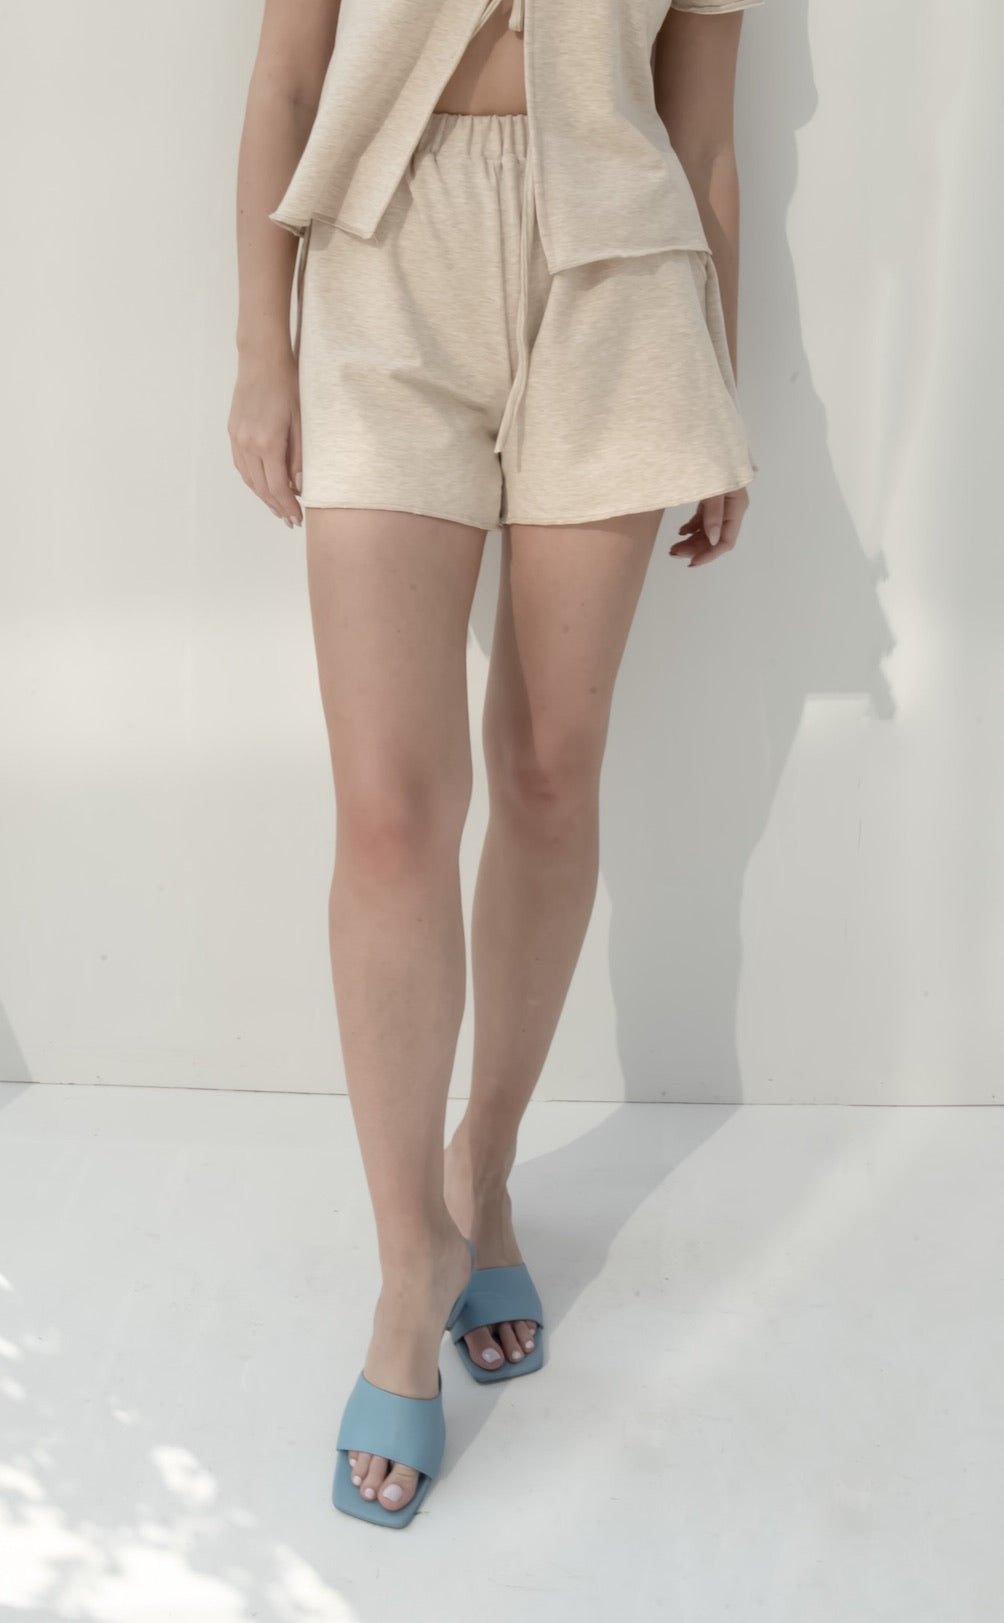 Carry shorts in beige